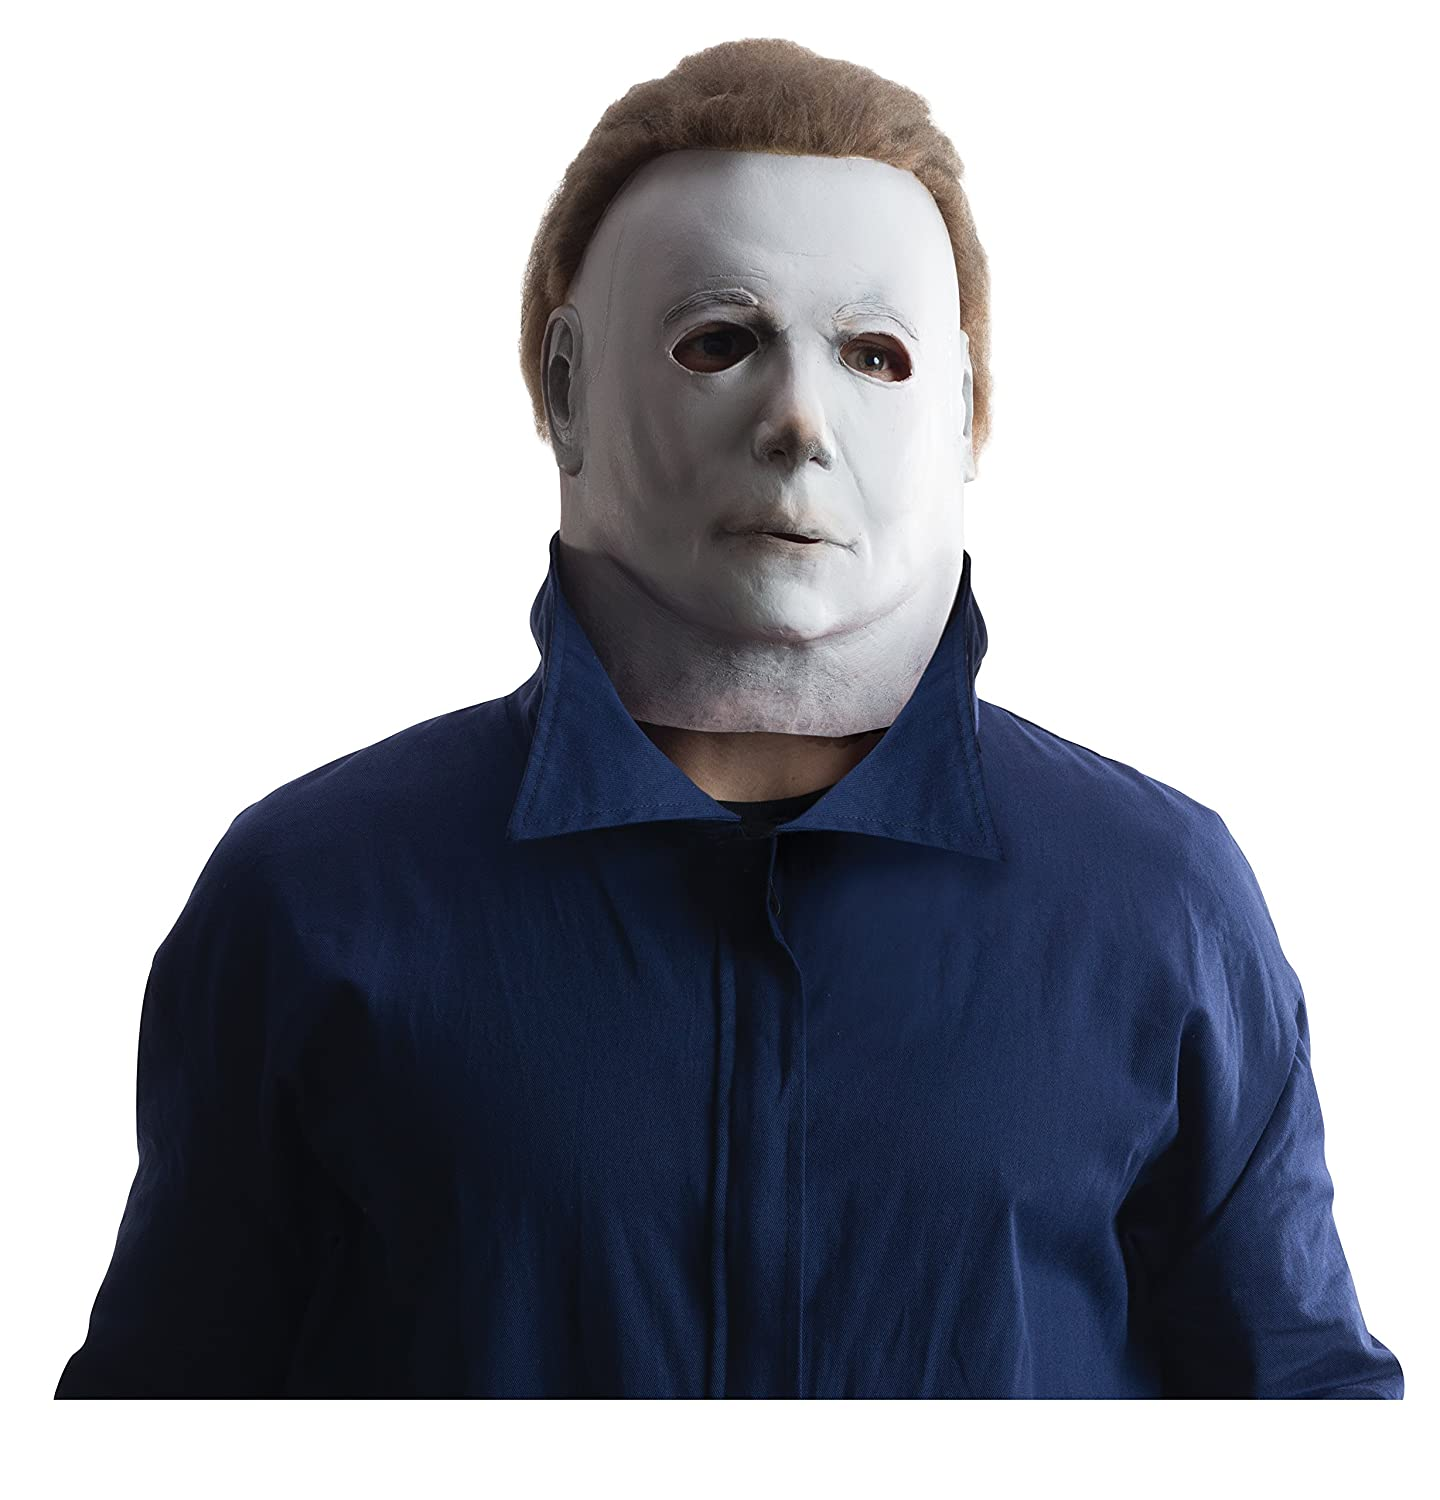 Amazon.com: Rubie's Costume Co Men's Deluxe Overhead Michael Myers ...